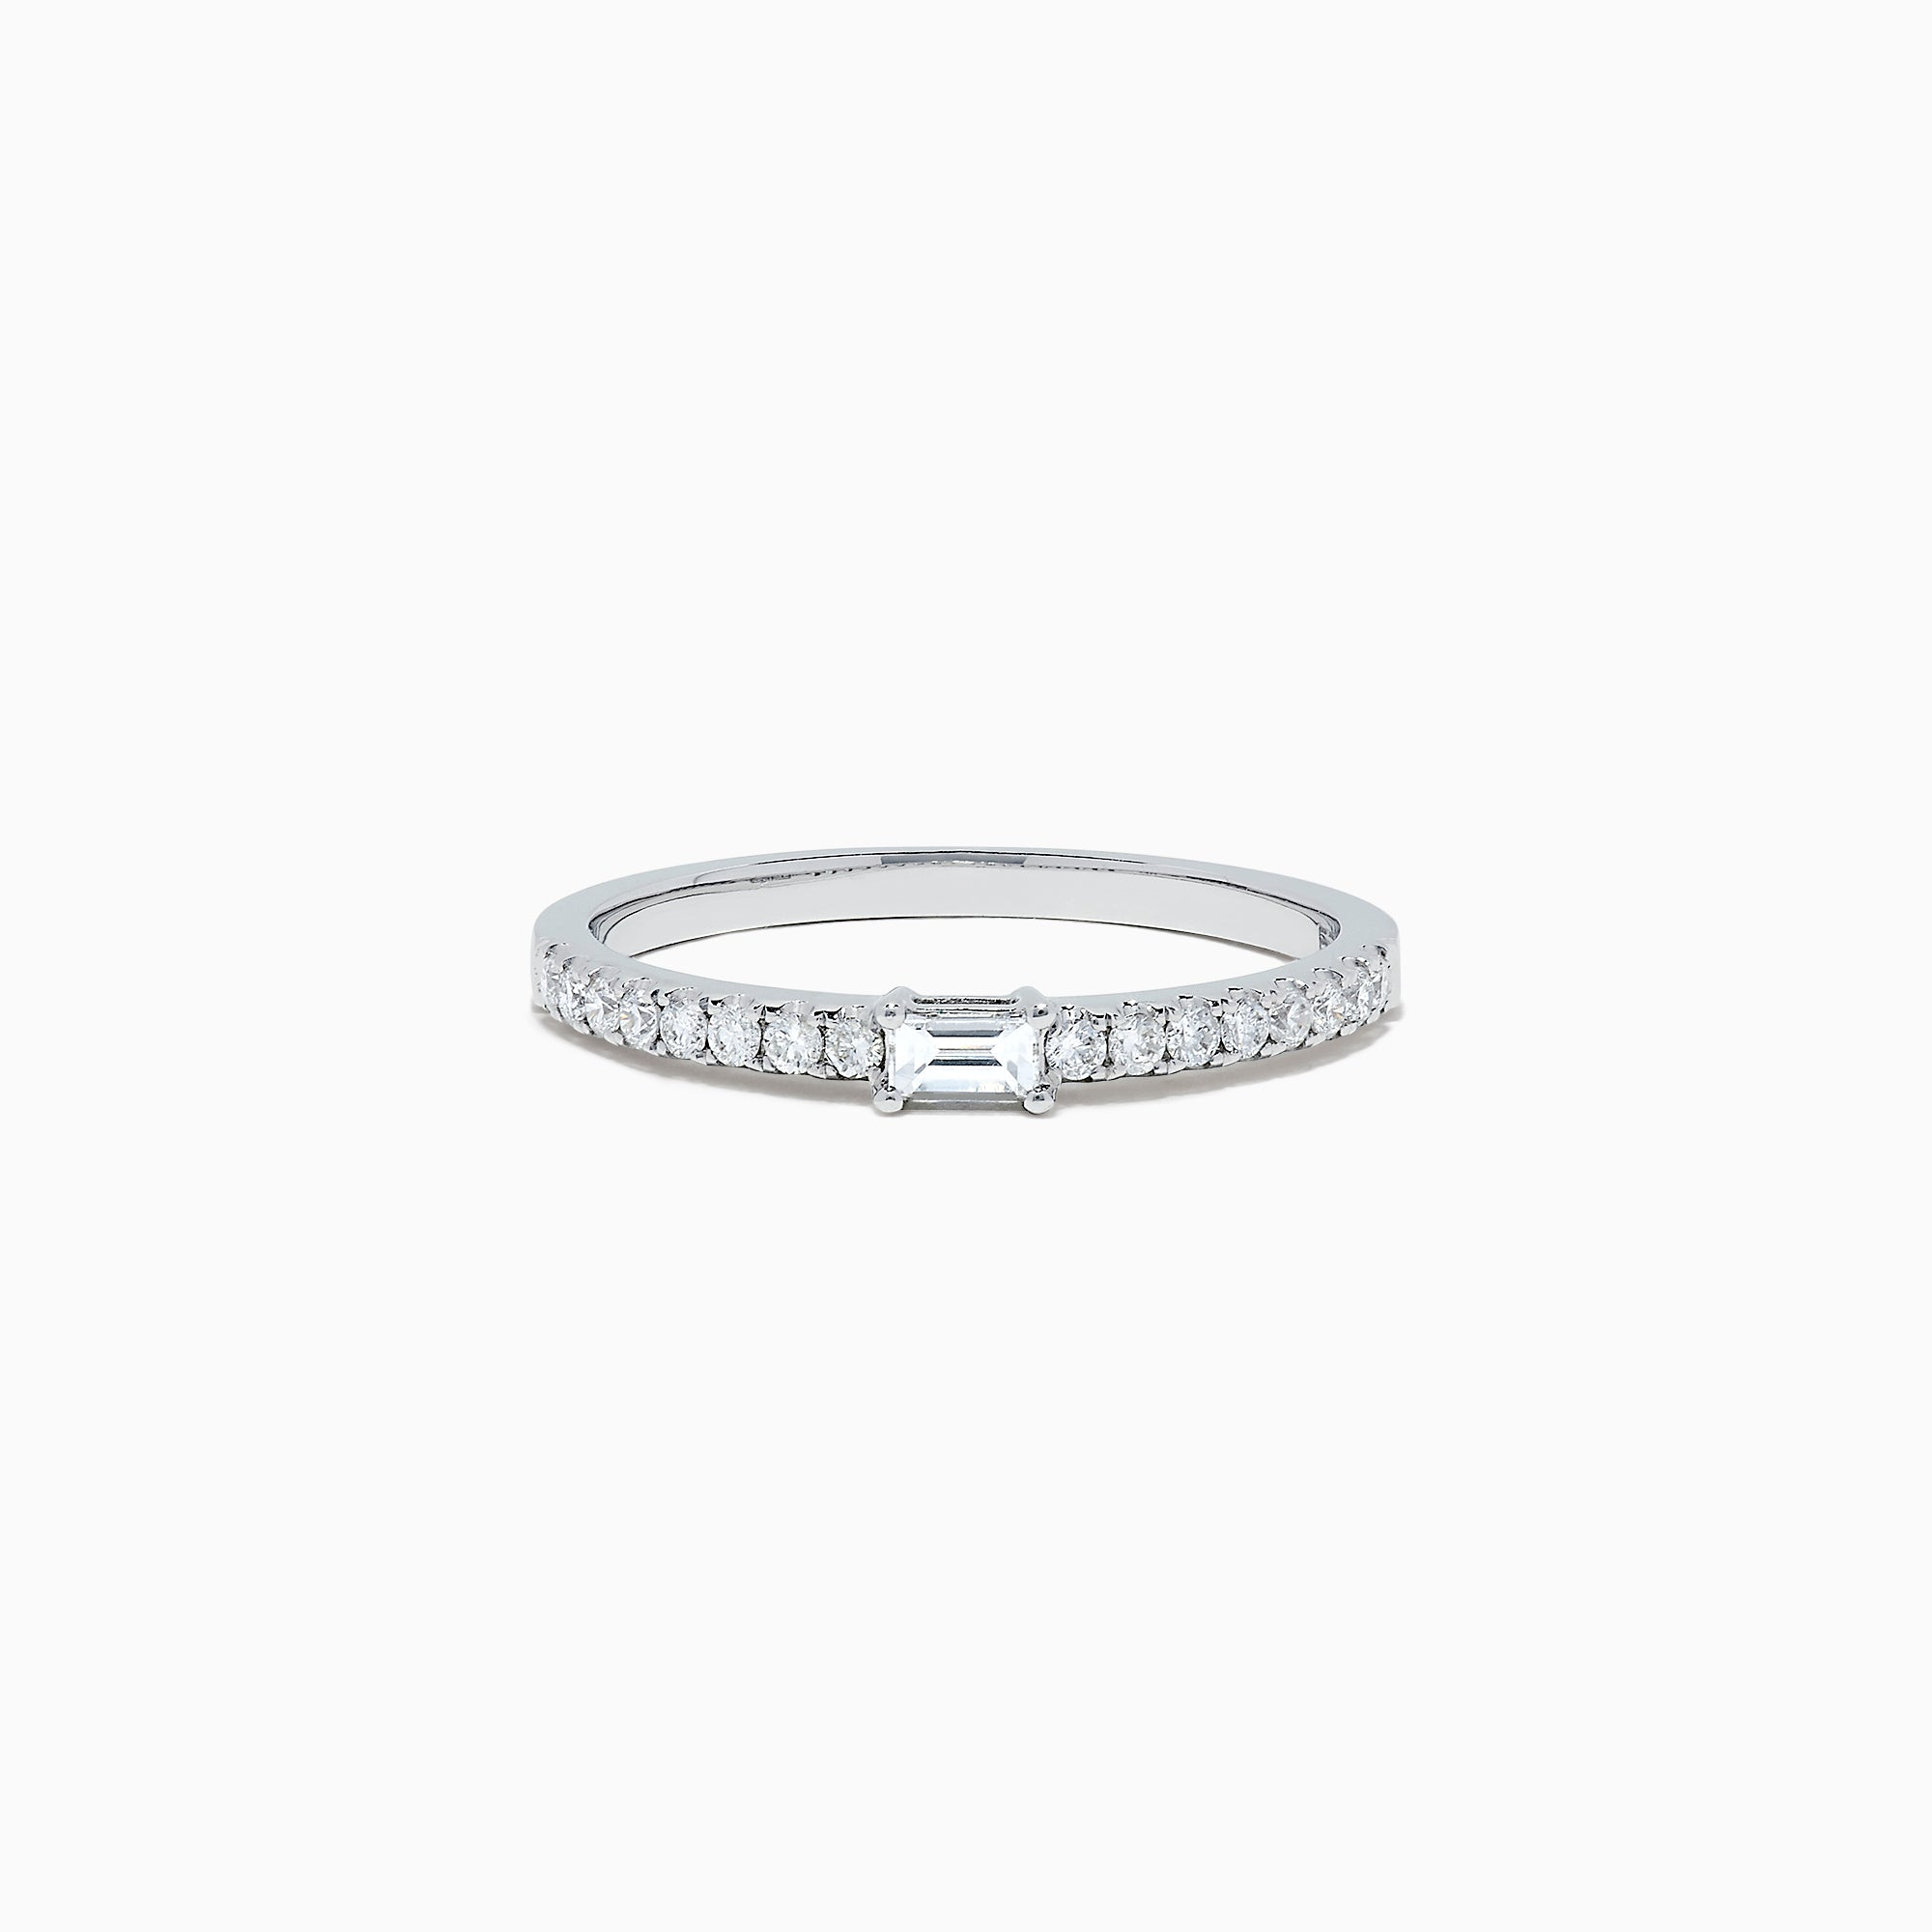 Effy Classique 14K White Gold Diamond Ring, 0.27 TCW